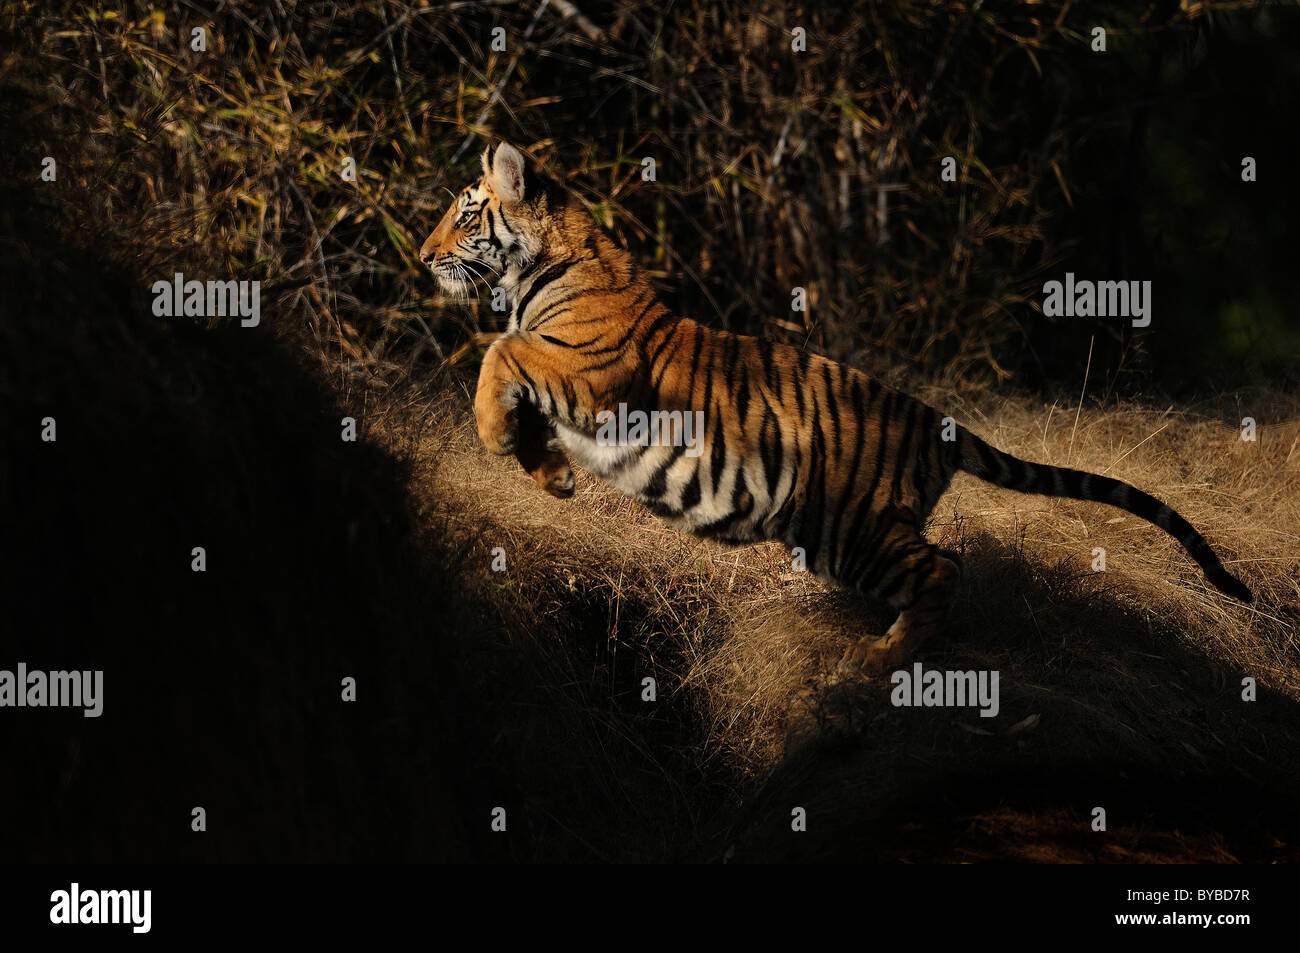 7-month-old female Bengal Tiger cub leaping in play in light and shade in Bandhavgarh Tiger Reserve, India - Stock Image